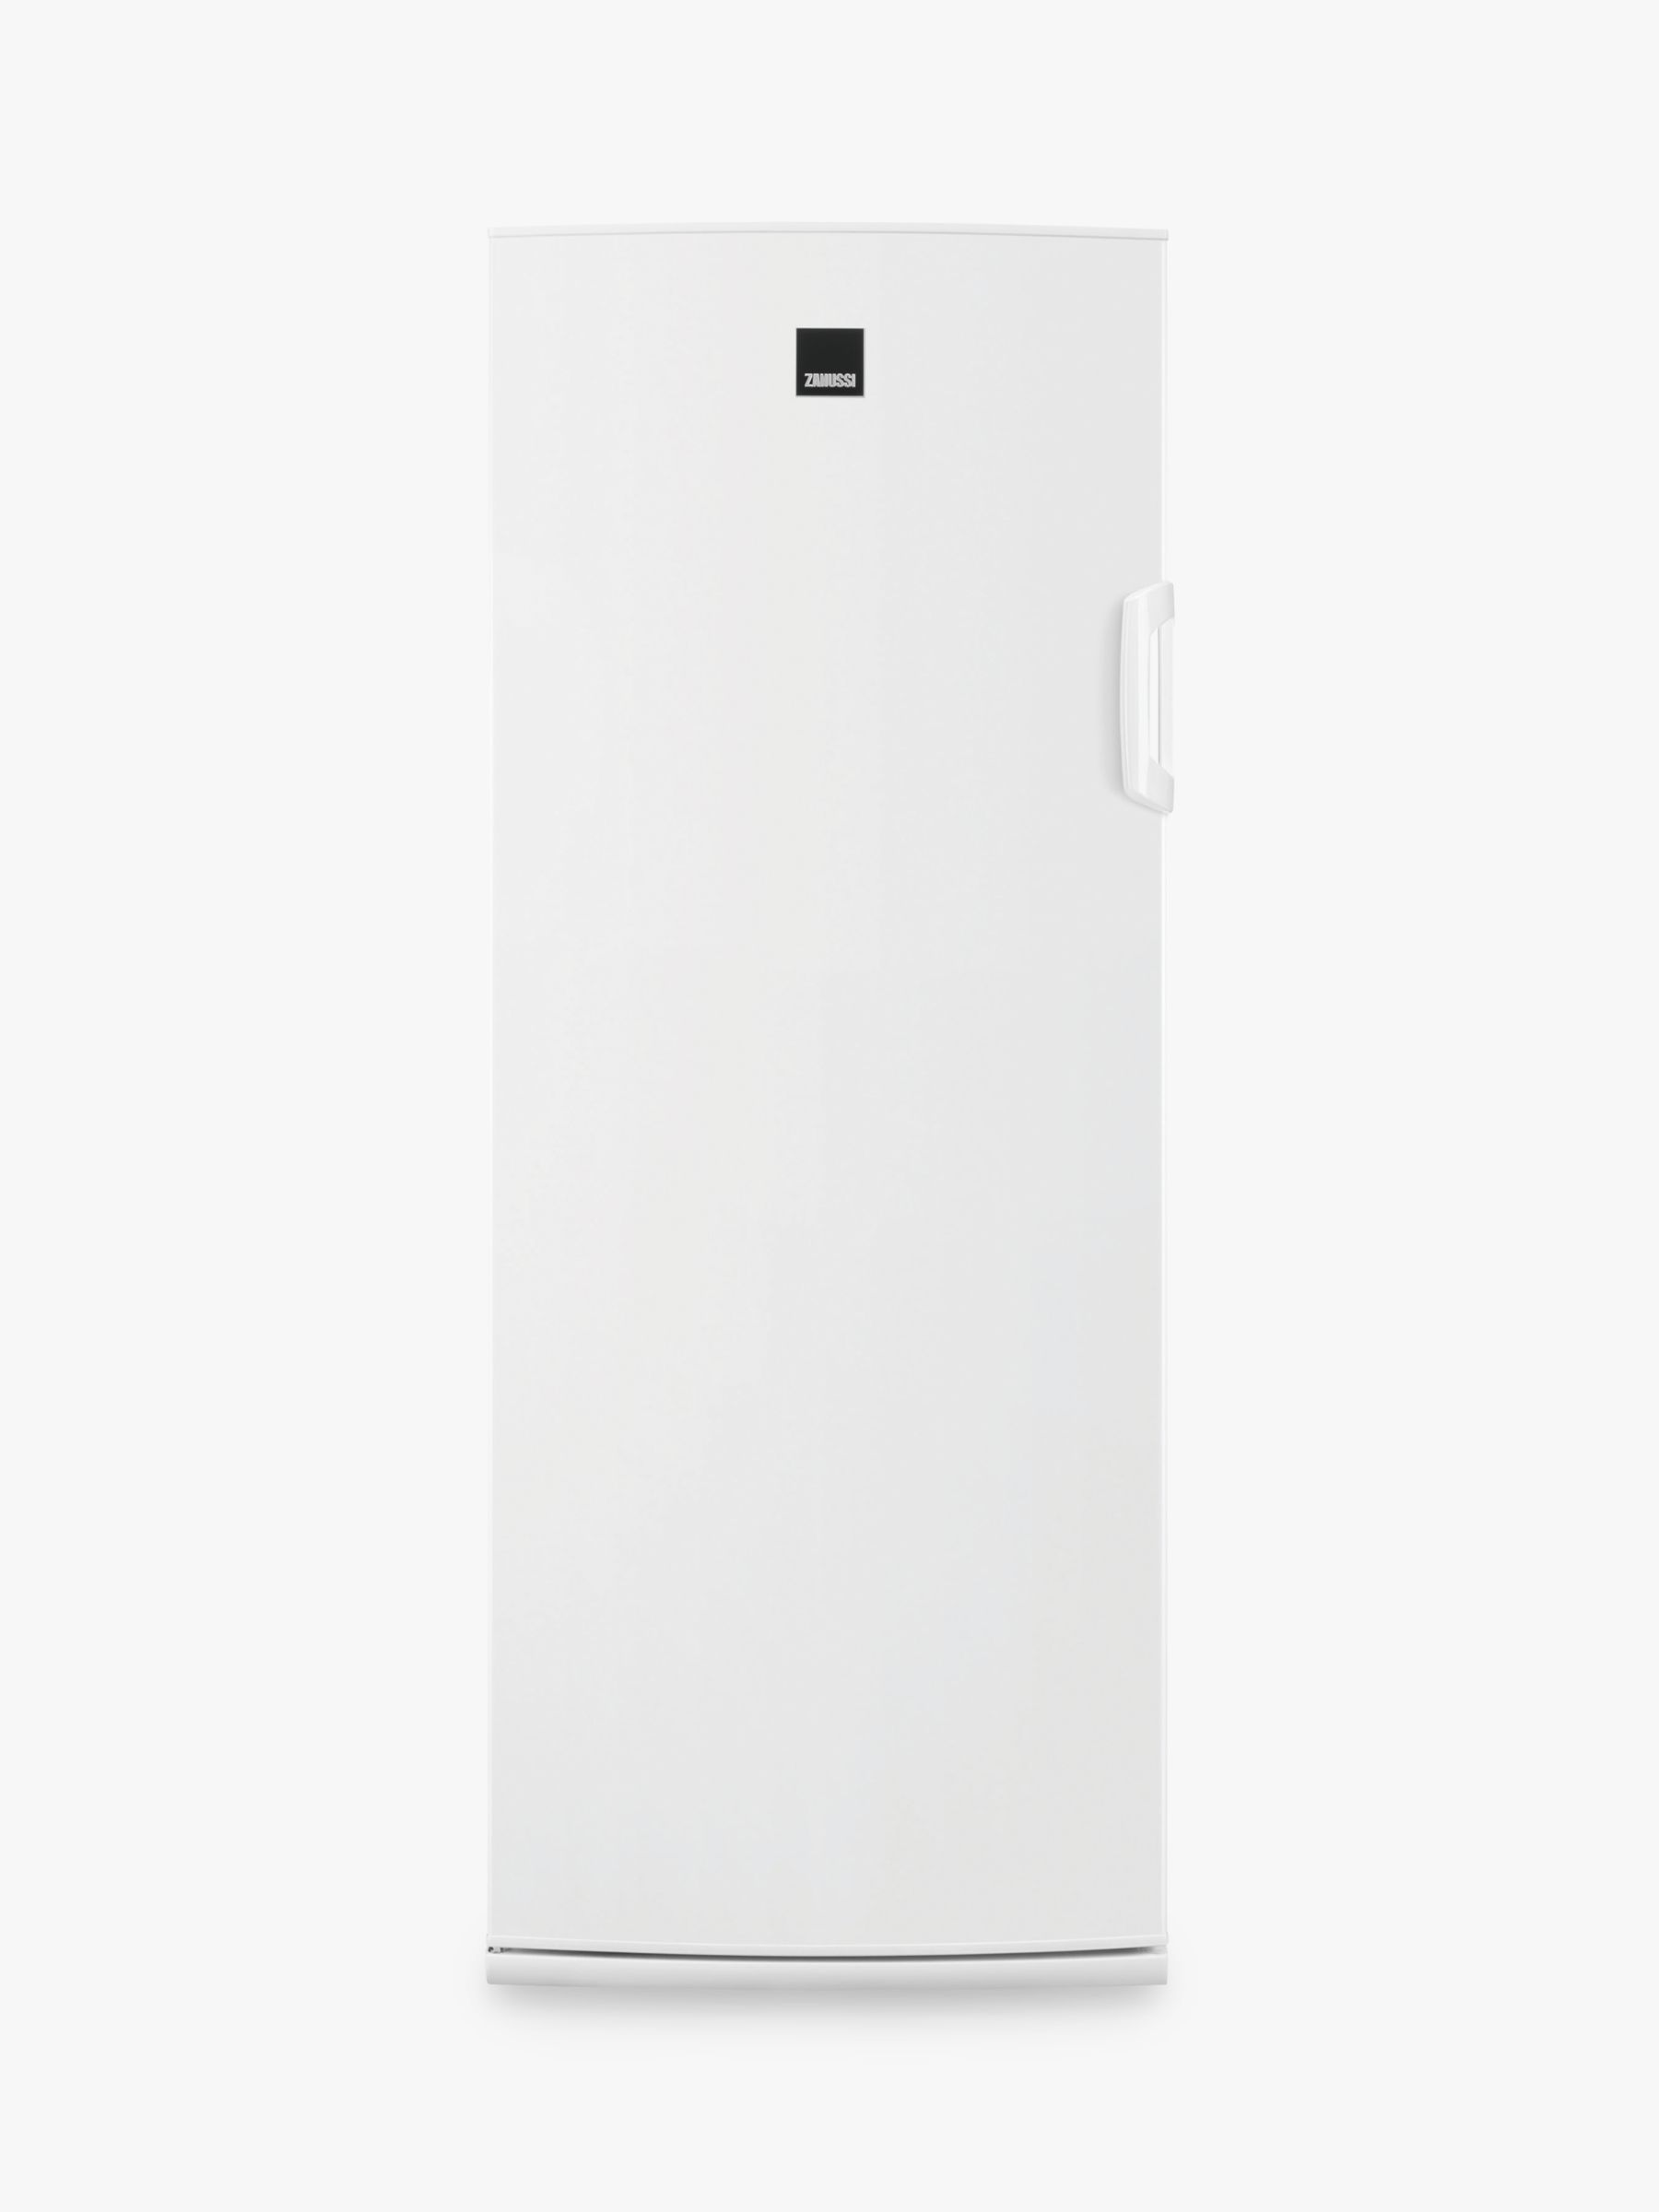 Zanussi Zanussi ZFU20223WV Freestanding Freezer, A+ Energy Rating, 60cm Wide, White